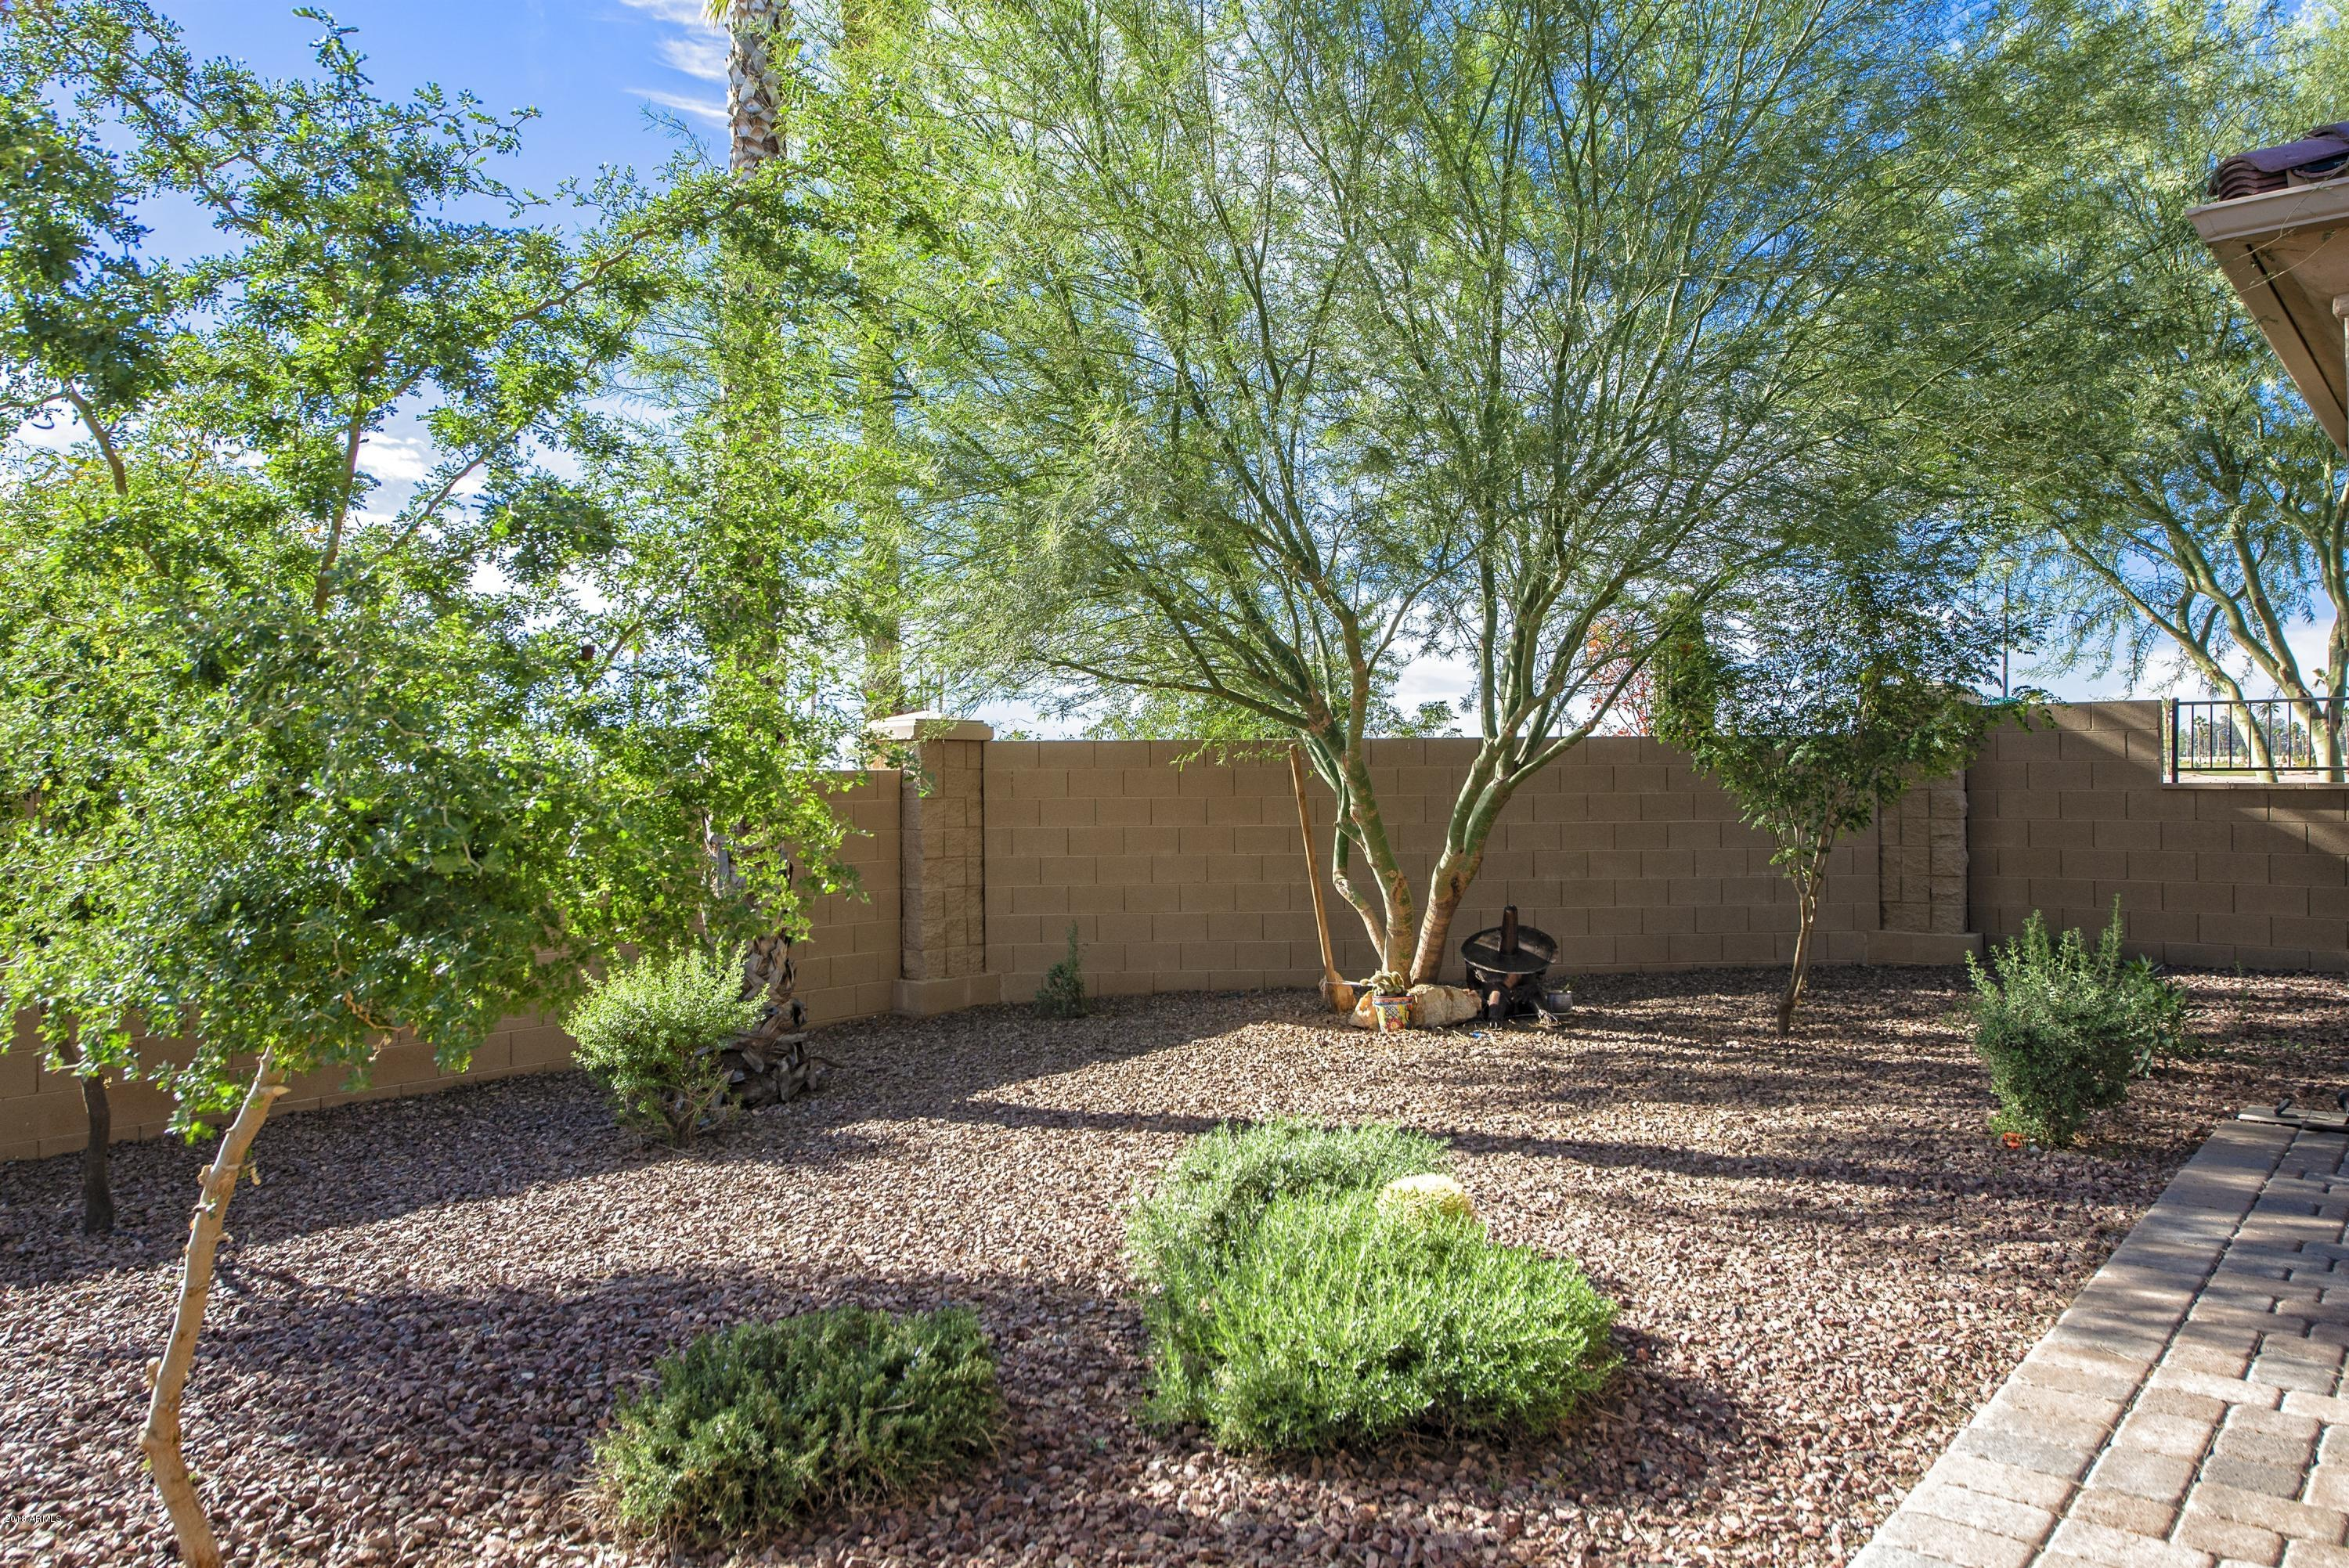 MLS 5857281 16463 W PICCADILLY Road, Goodyear, AZ 85395 Goodyear AZ Condo or Townhome